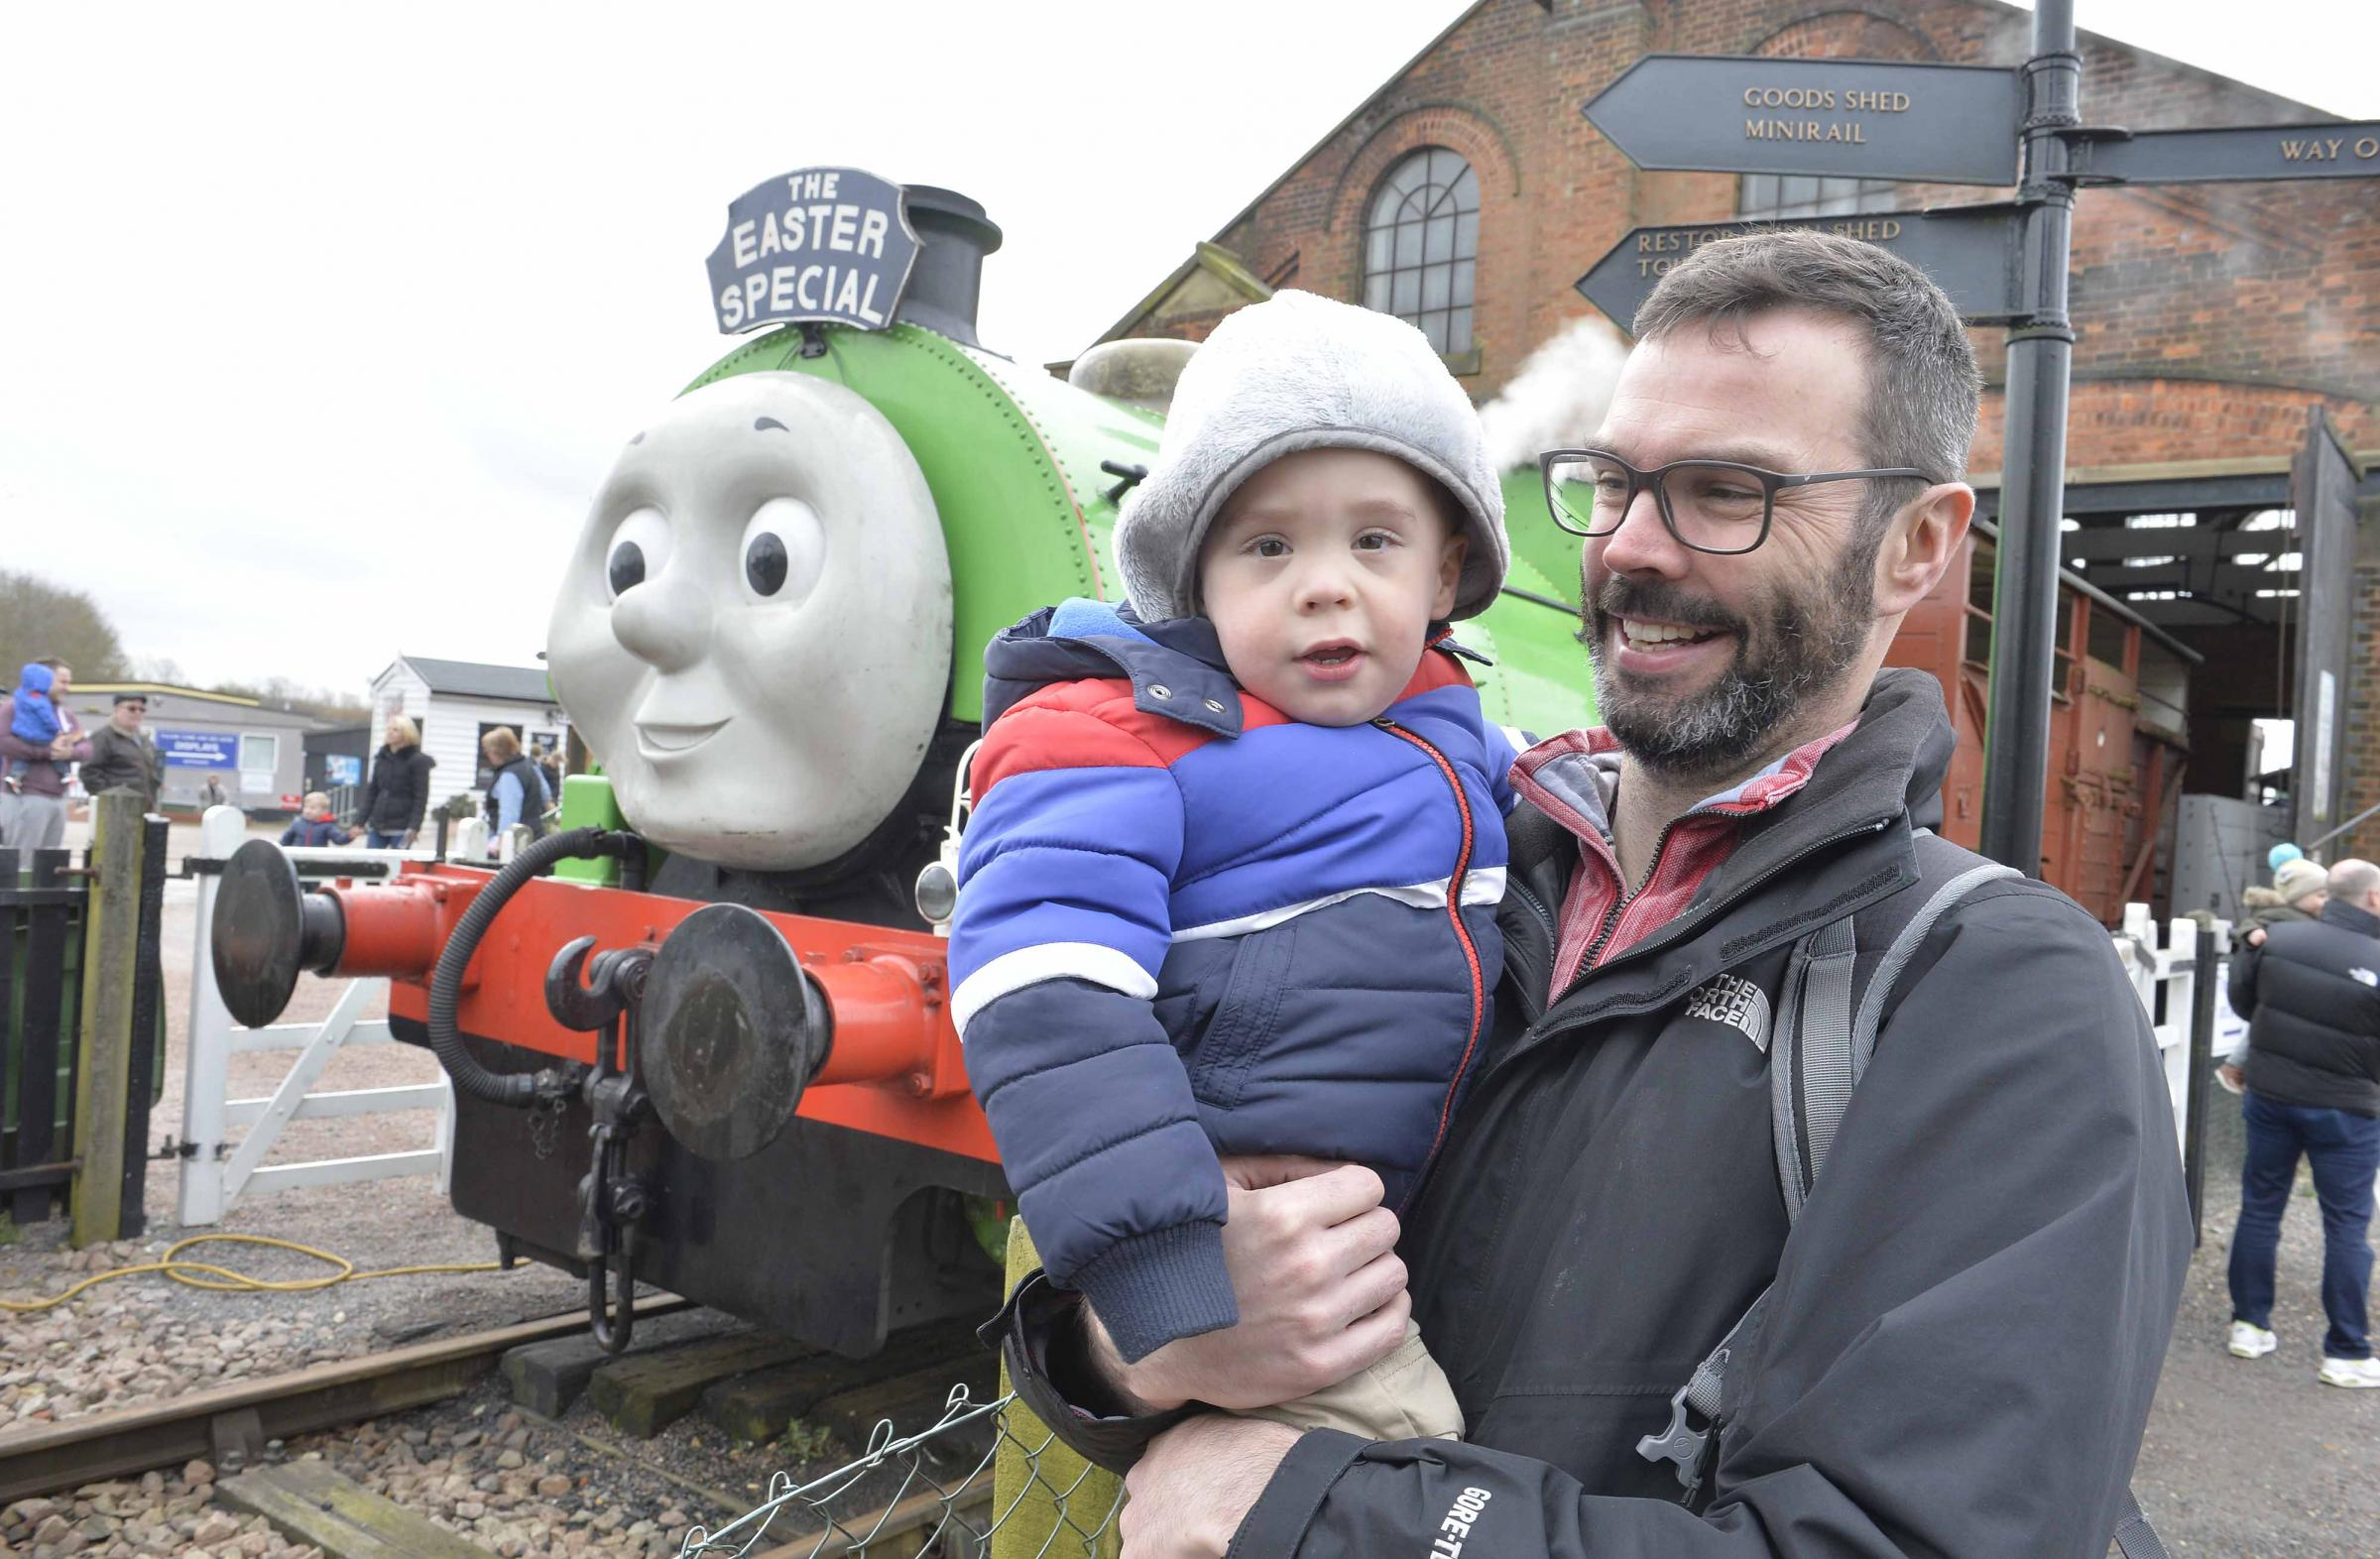 Thomas and friends coming to railway museum